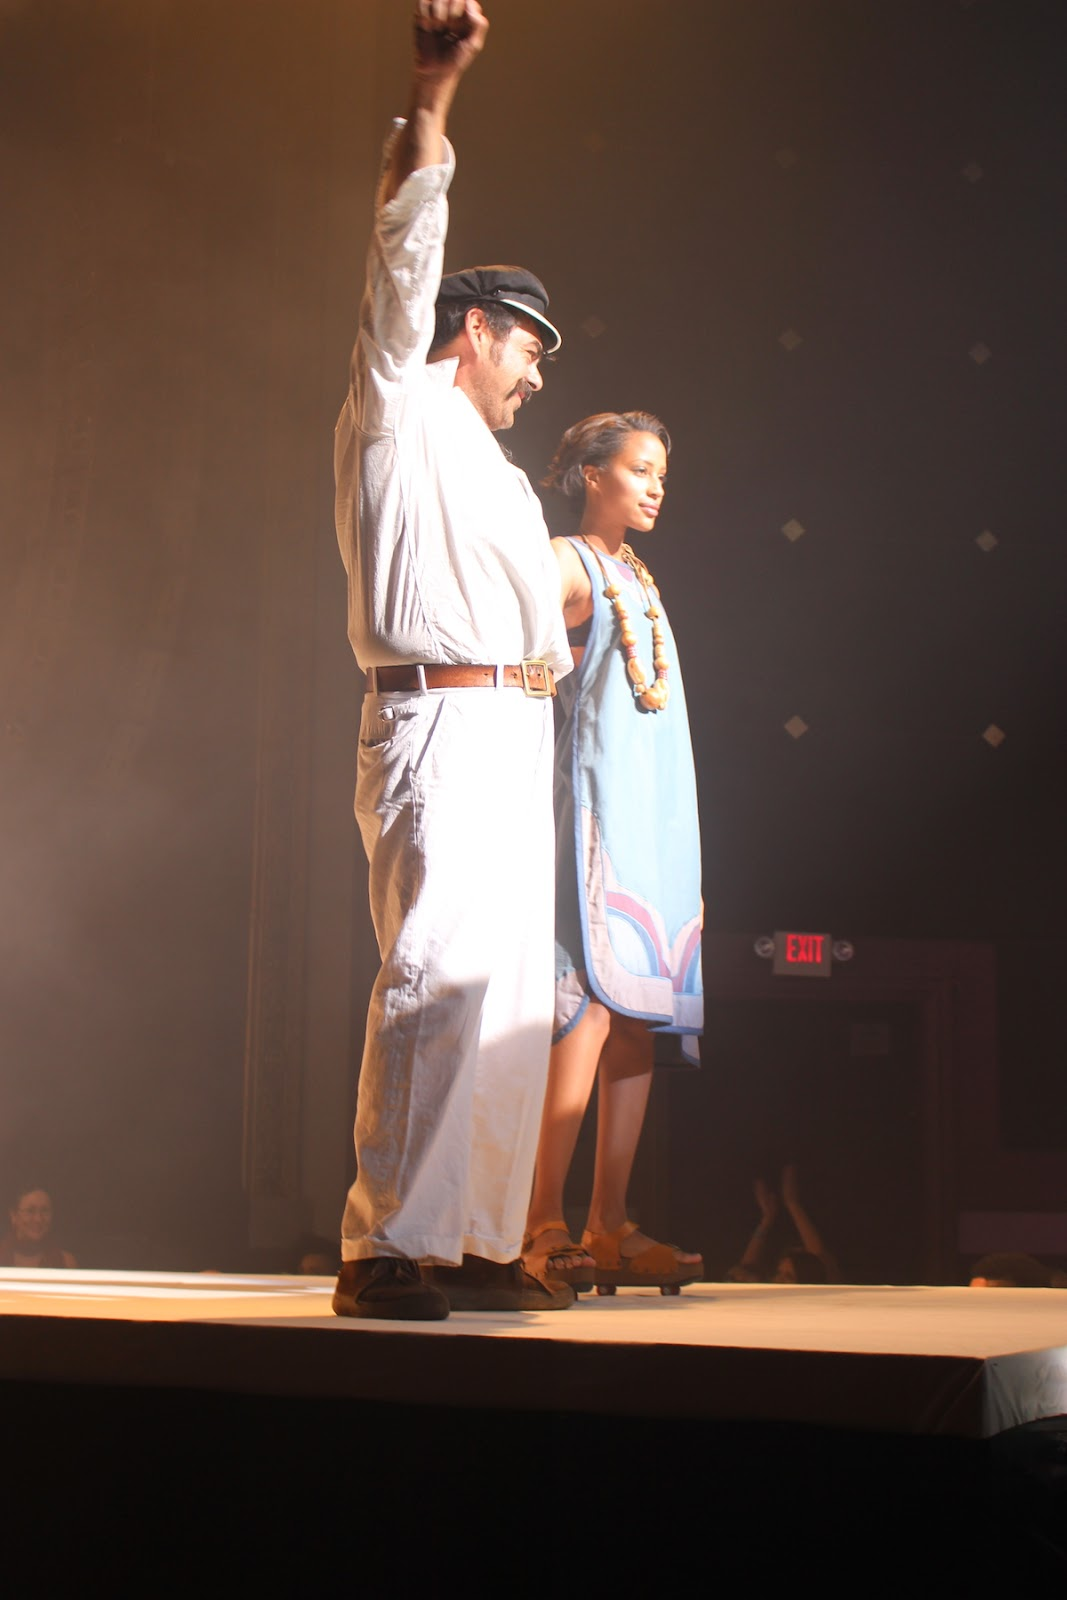 In this photo, Esteban has his arm raised thanking the audience for their applause. He is holding the hand of the model wearing his favorite piece in the collection.